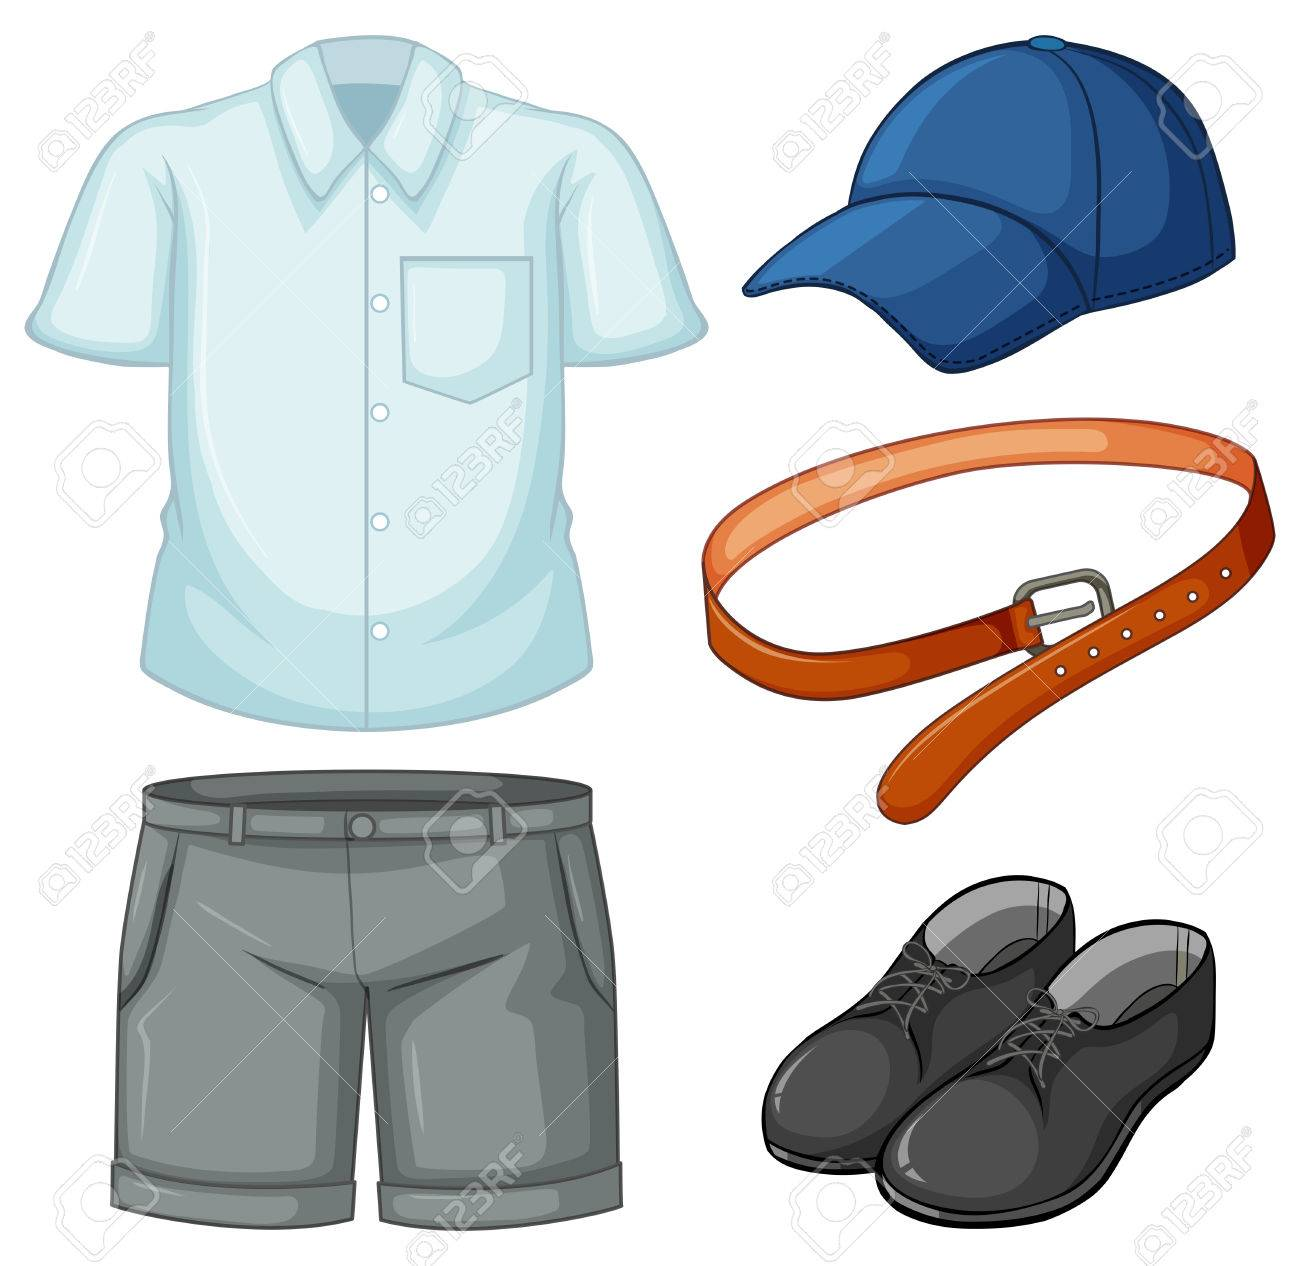 school uniform set on white background illustration royalty free rh 123rf com a schoolboy in uniform - clipart school uniform clipart free